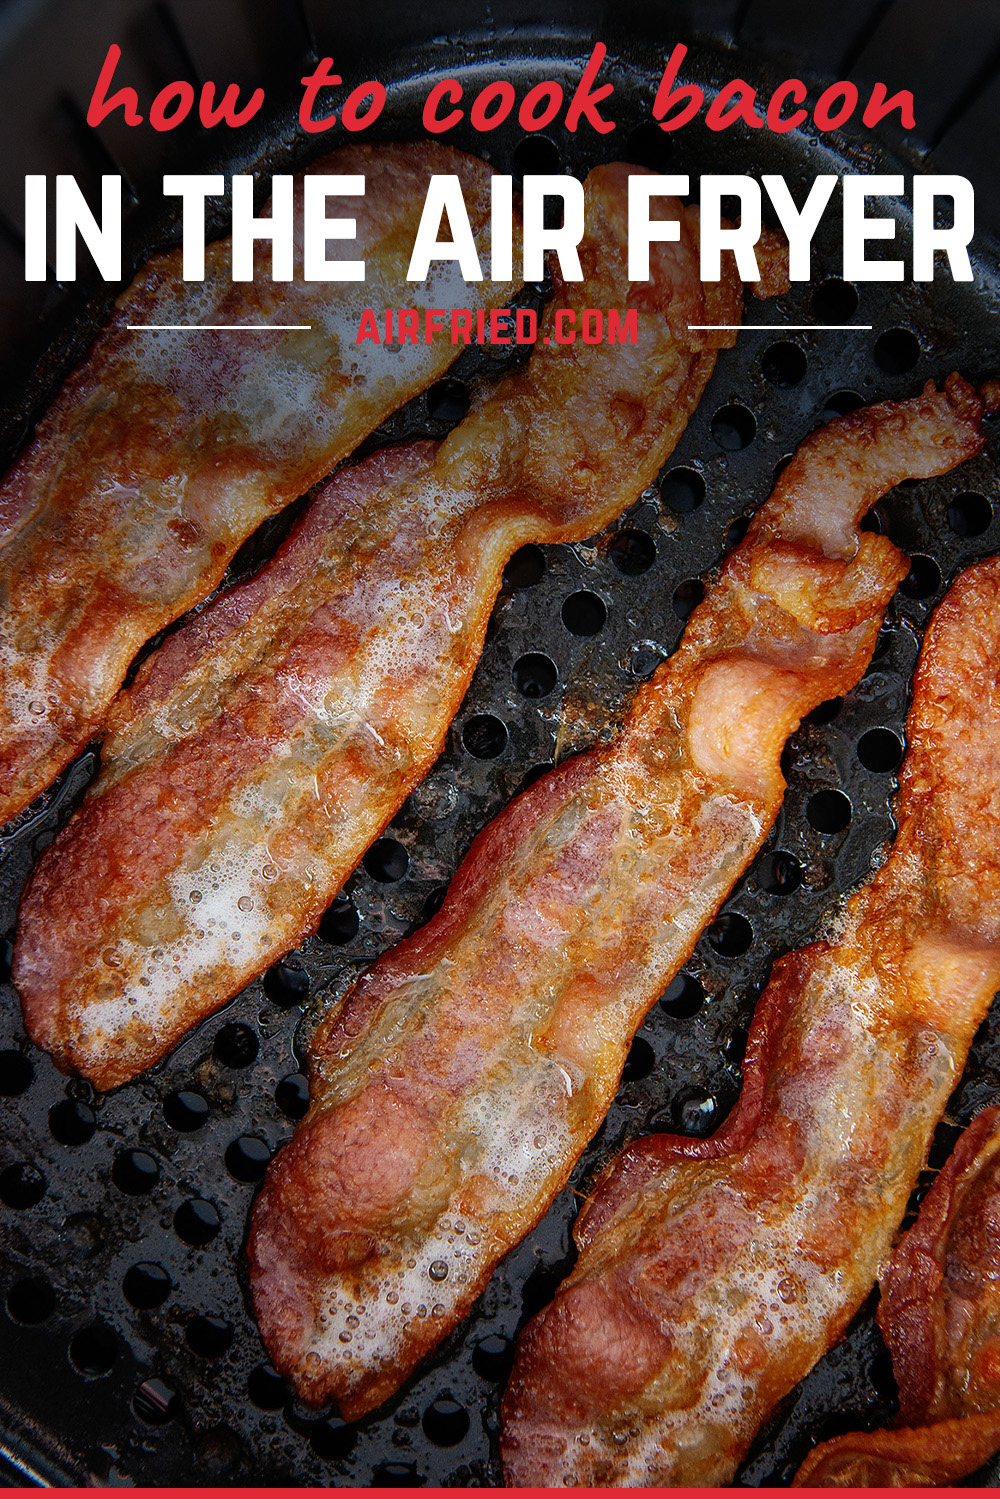 Air Fried Bacon comes out perfectly crispy in just about 8 minutes without a bunch of grease splatter all over your stove! Plus your whole house won't smell like bacon all day!